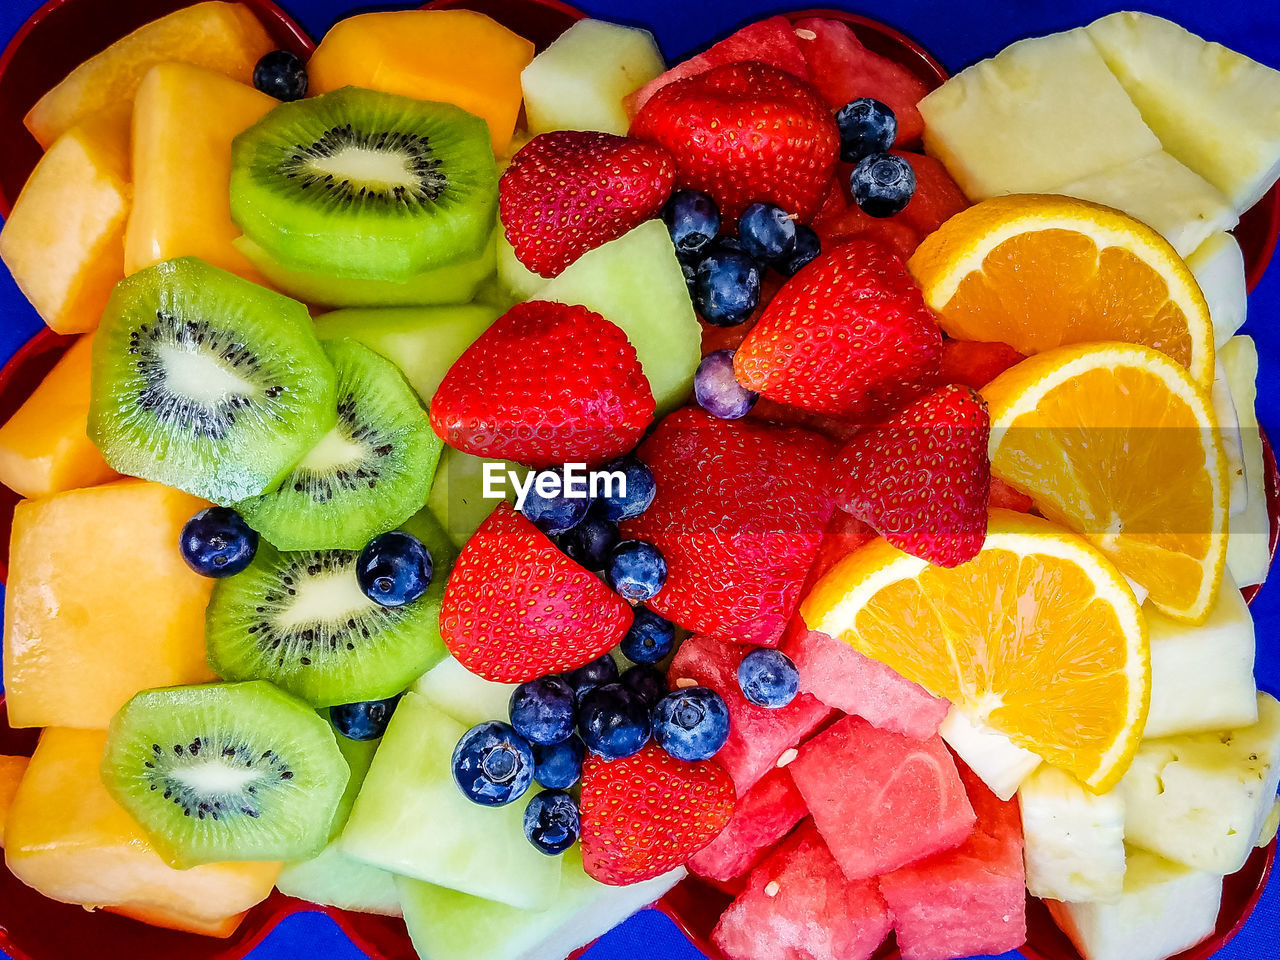 fruit, healthy eating, food and drink, kiwi, food, kiwi - fruit, berry fruit, wellbeing, freshness, multi colored, choice, strawberry, blueberry, variation, raspberry, still life, no people, slice, indoors, high angle view, orange, fruit salad